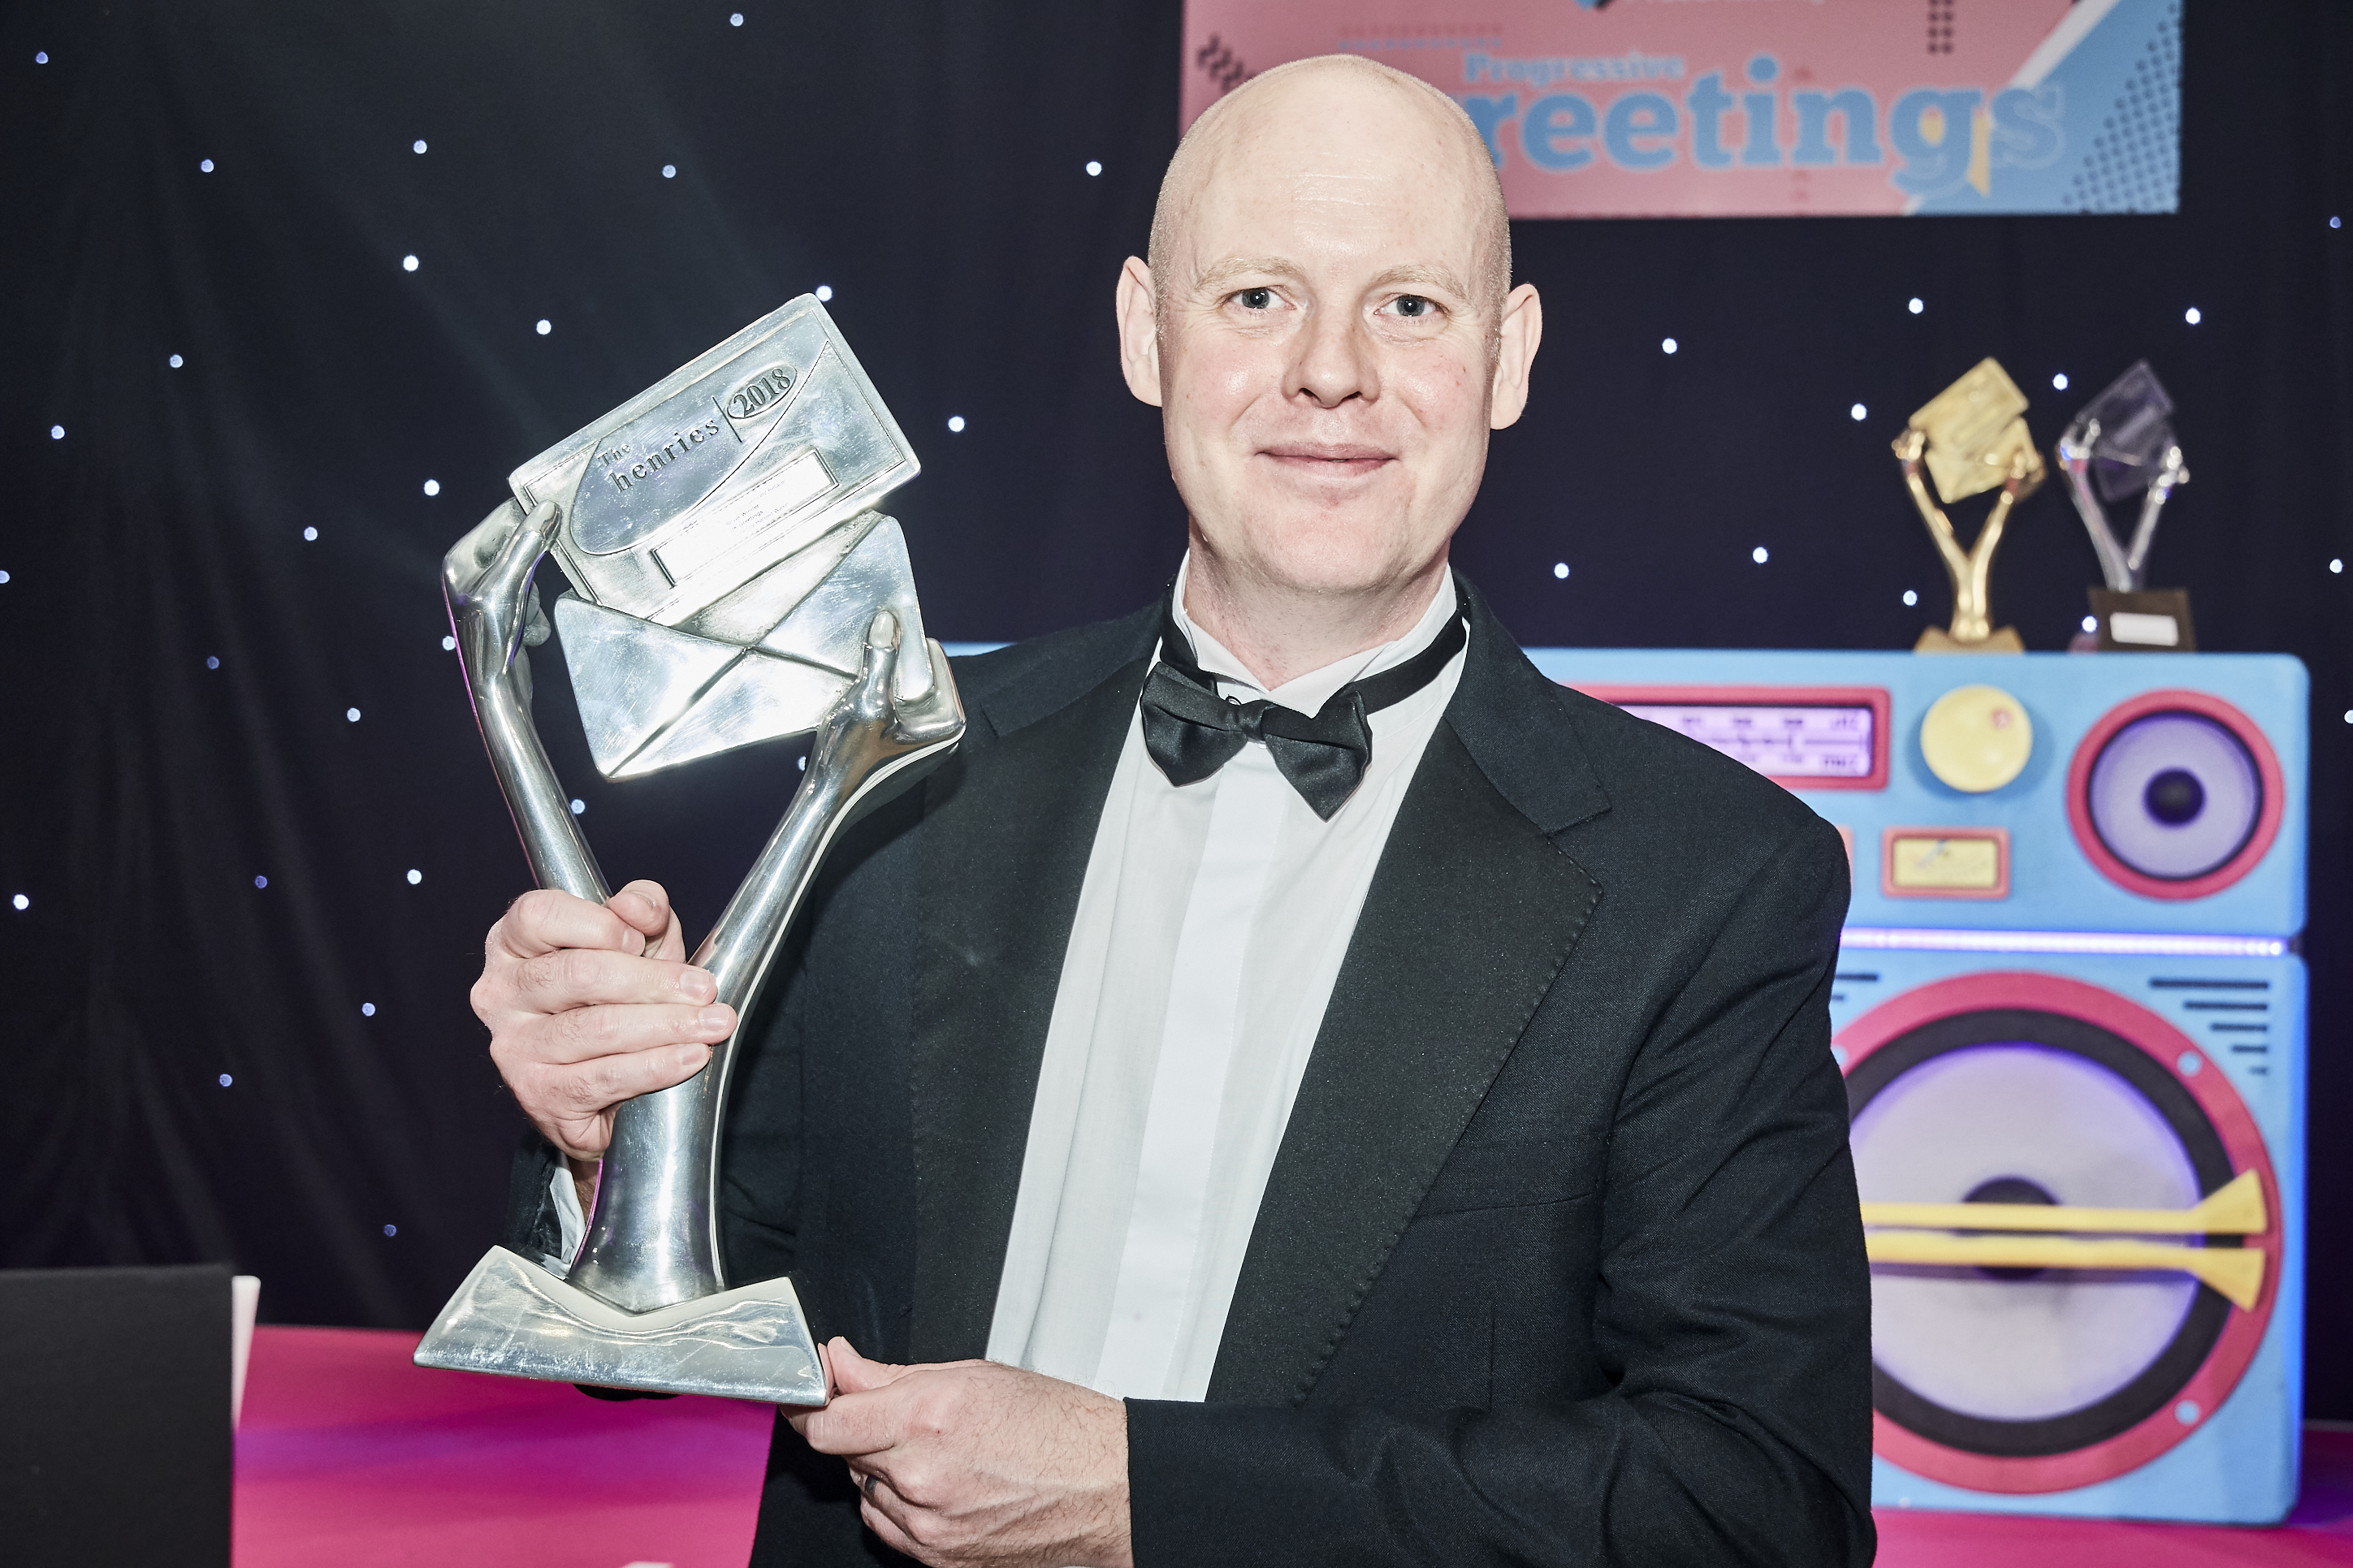 Above: UKG's Darren Cave was proud to collect the Silver Best Service to the Independent Retailer trophy.